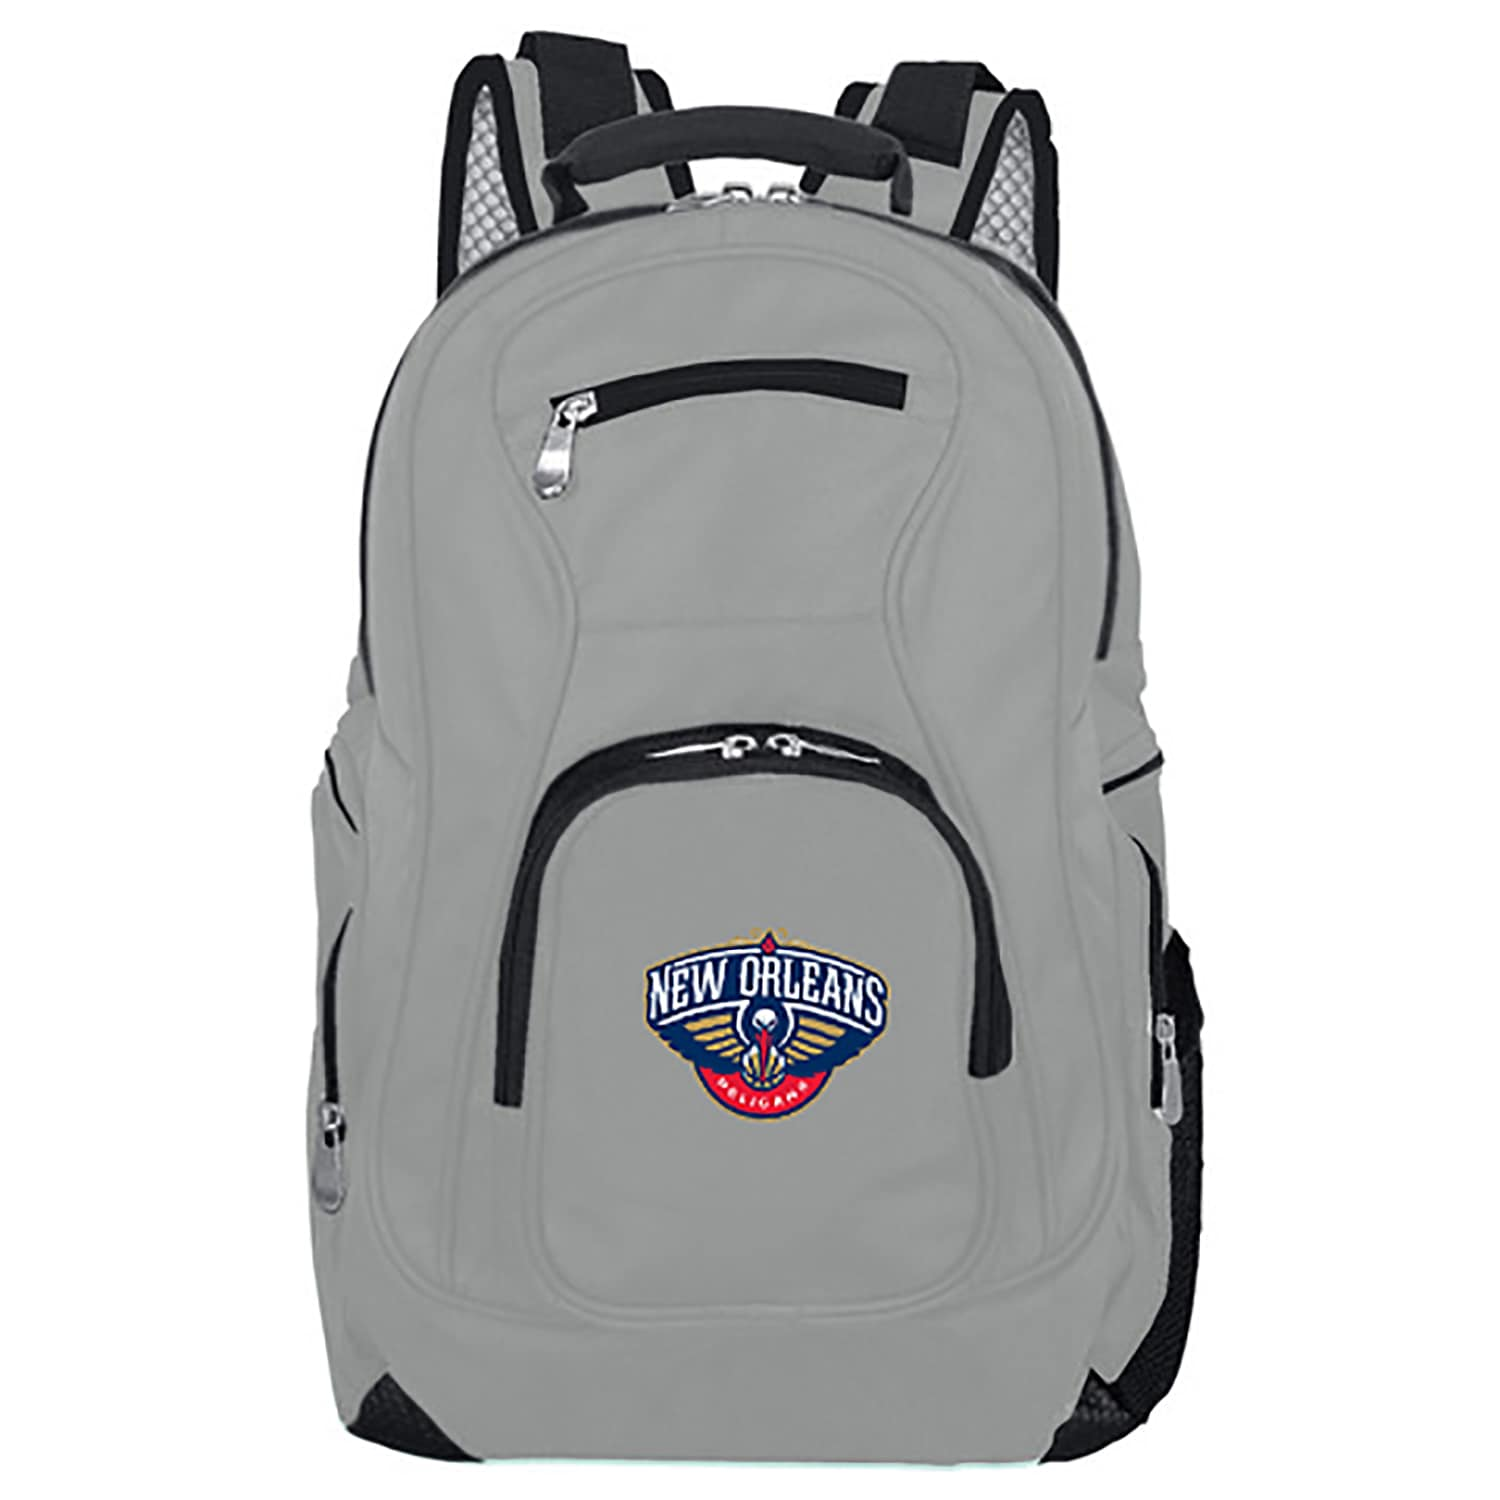 New Orleans Pelicans Backpack Laptop - Gray